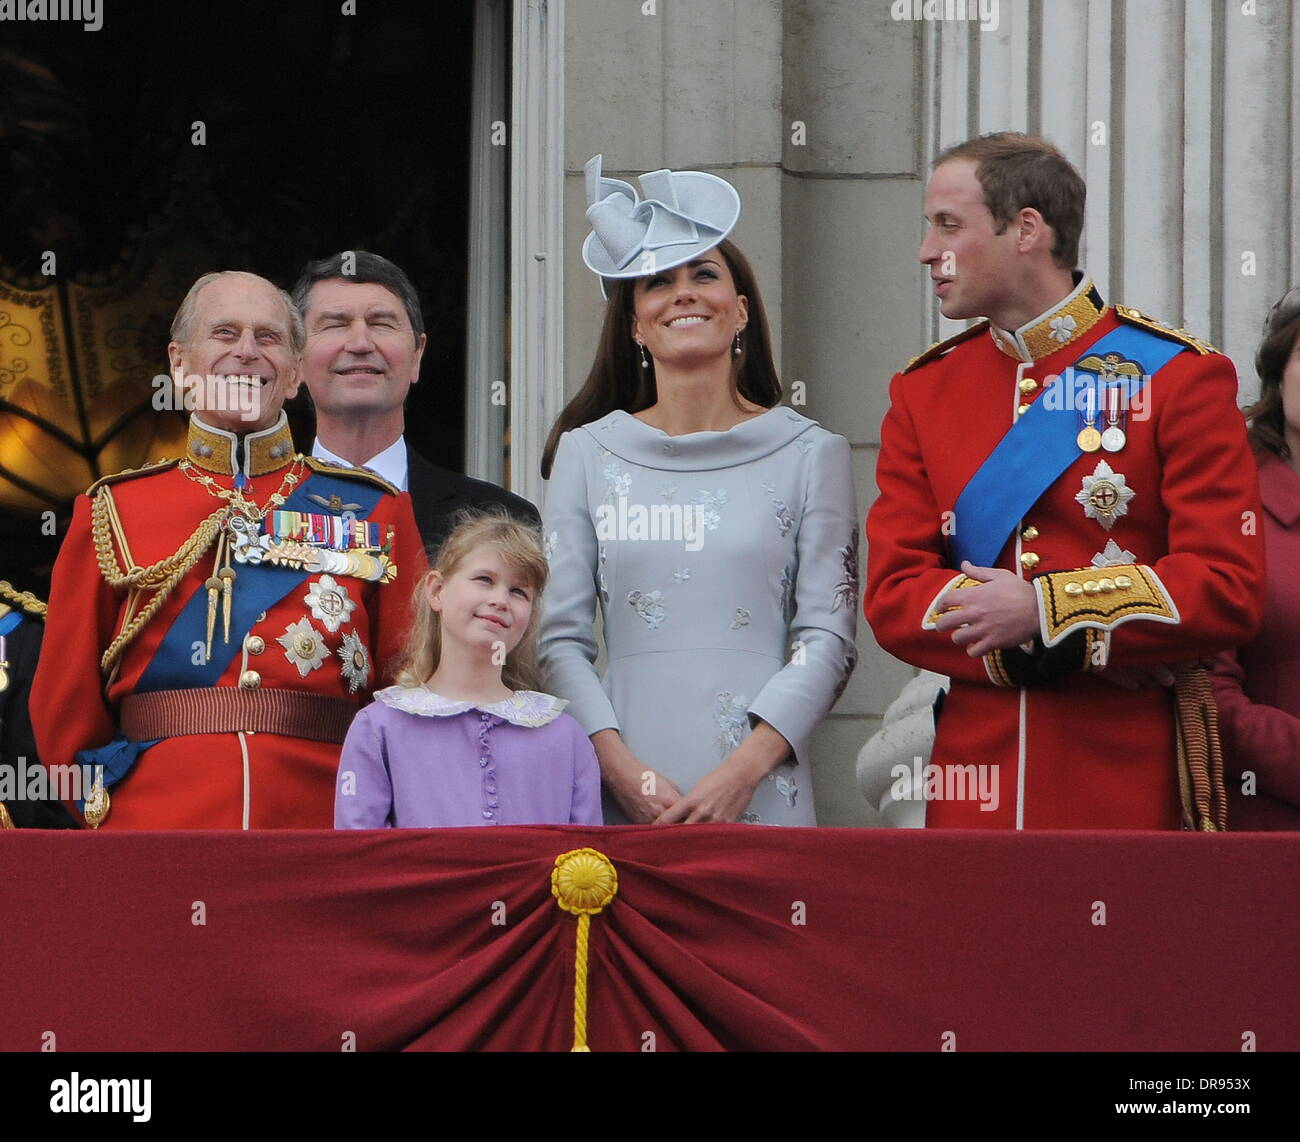 Prince philip duke of edinburgh prince harry catherine the duchess of cambridge and prince william the duke of cambridge attend the 2012 trooping the